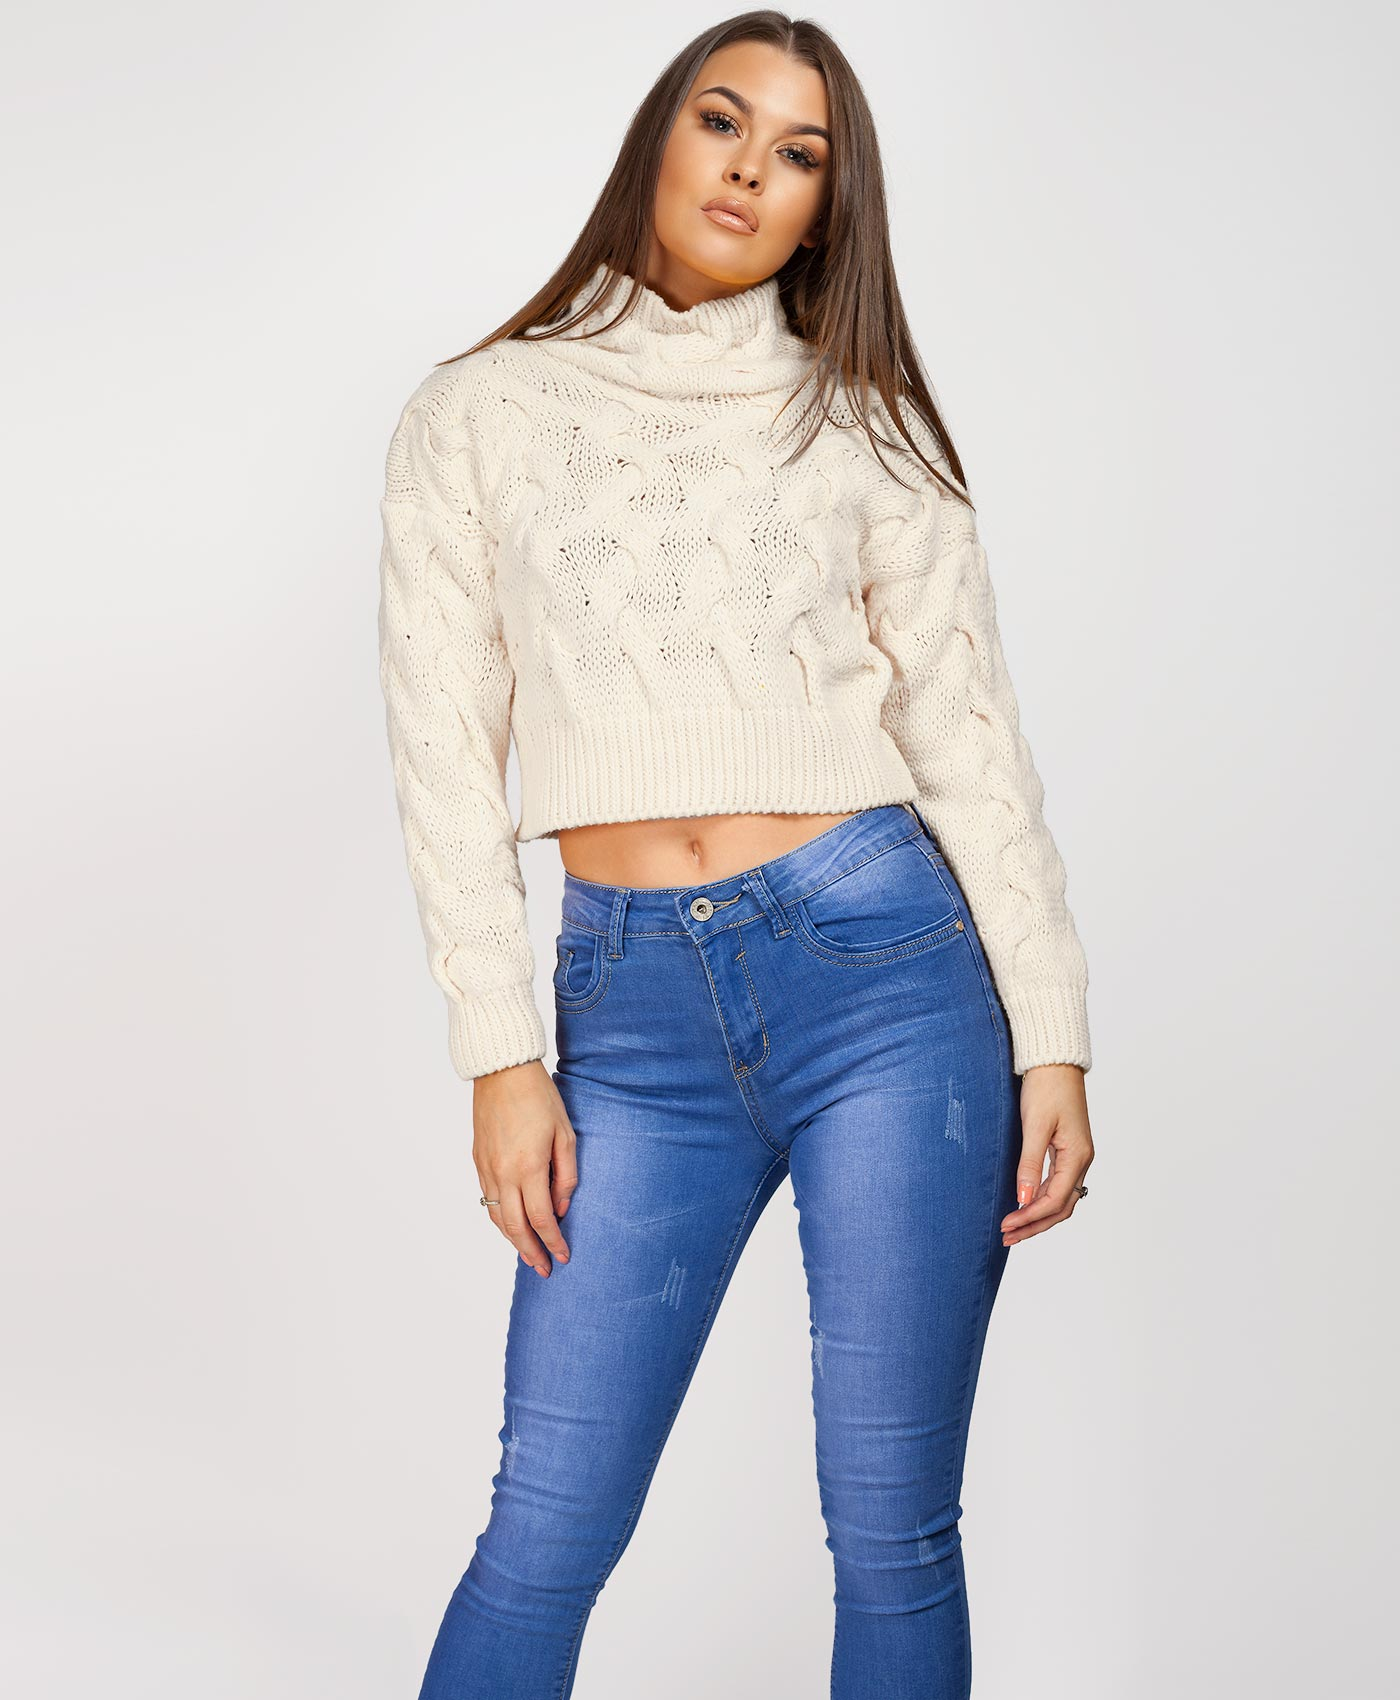 Womens-Ladies-Cable-Knitted-High-Neck-Cropped-Top-Pullover-Sweater-Chunky-Jumper thumbnail 26